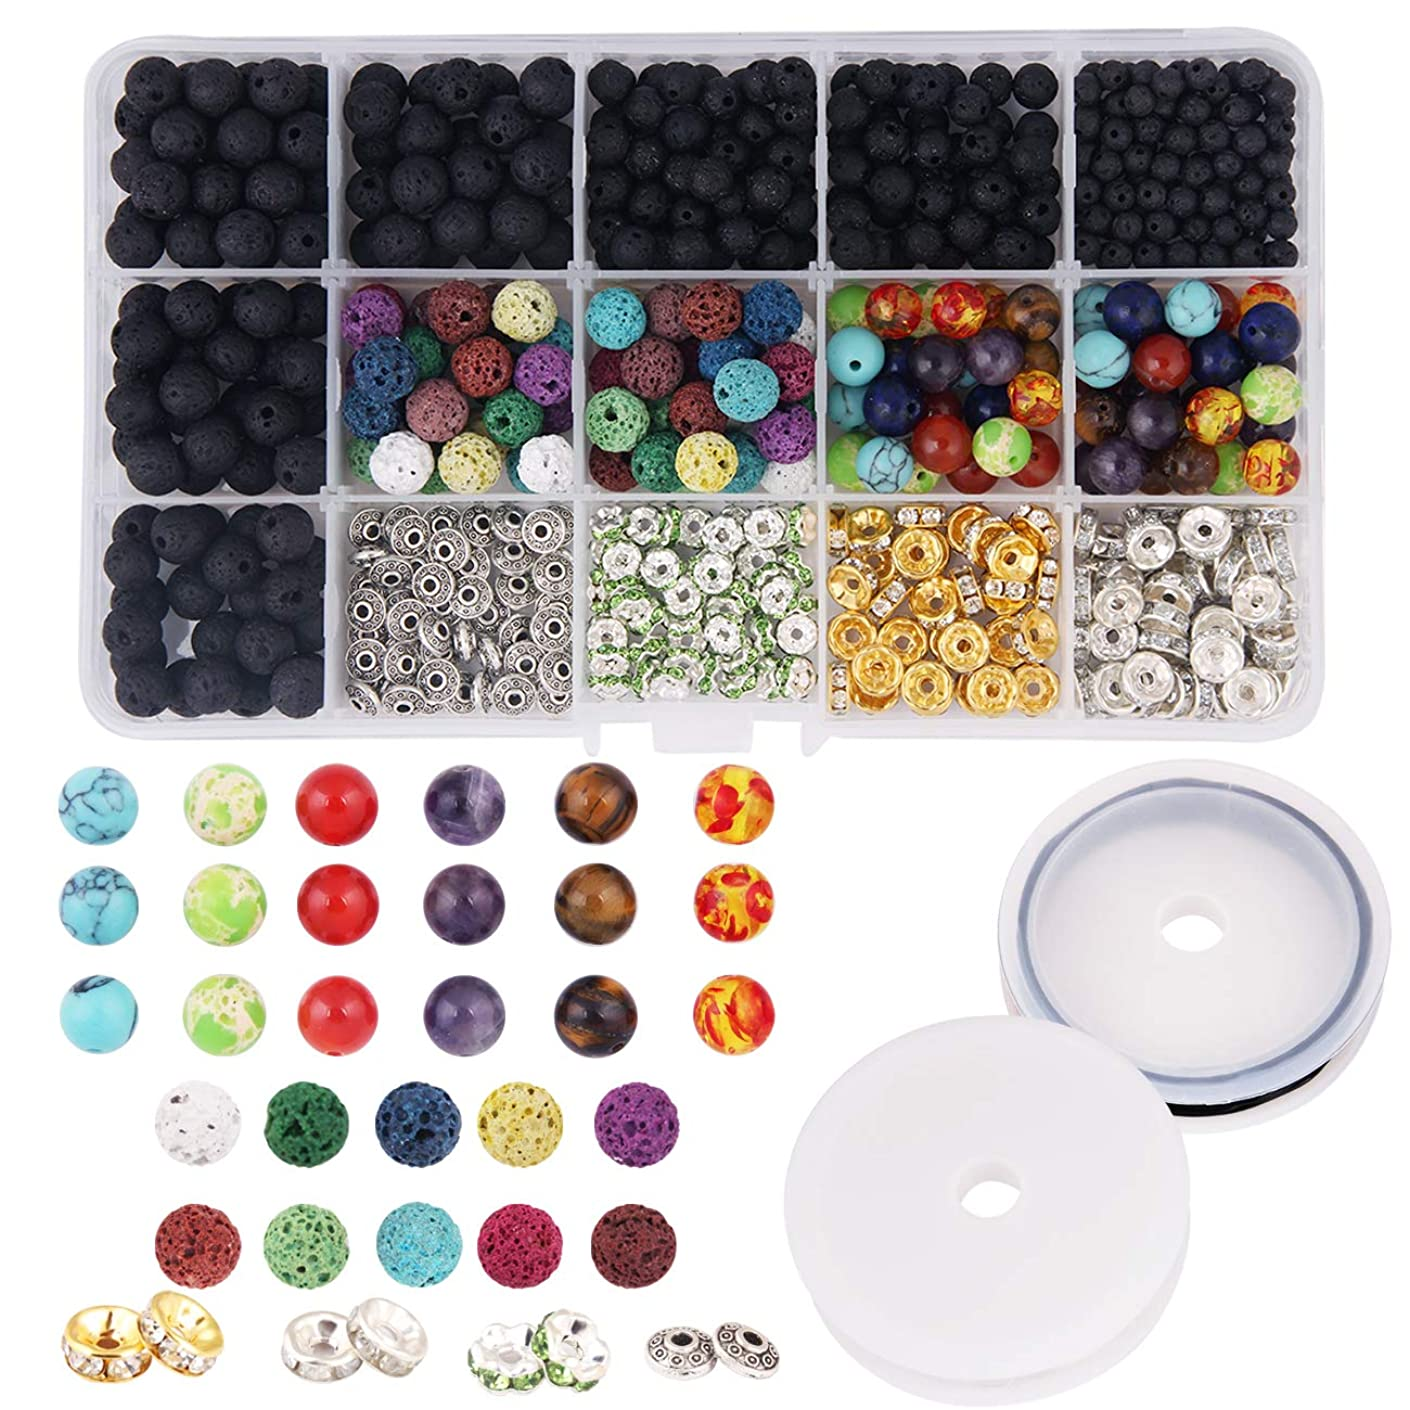 Candygirl 600Pcs DIY Lava Stone Bracelets Necklace Volcanic Rock Beads Kits for DIY Bracelets Necklace with Chakra Beads As Essential Oil (600pcs)